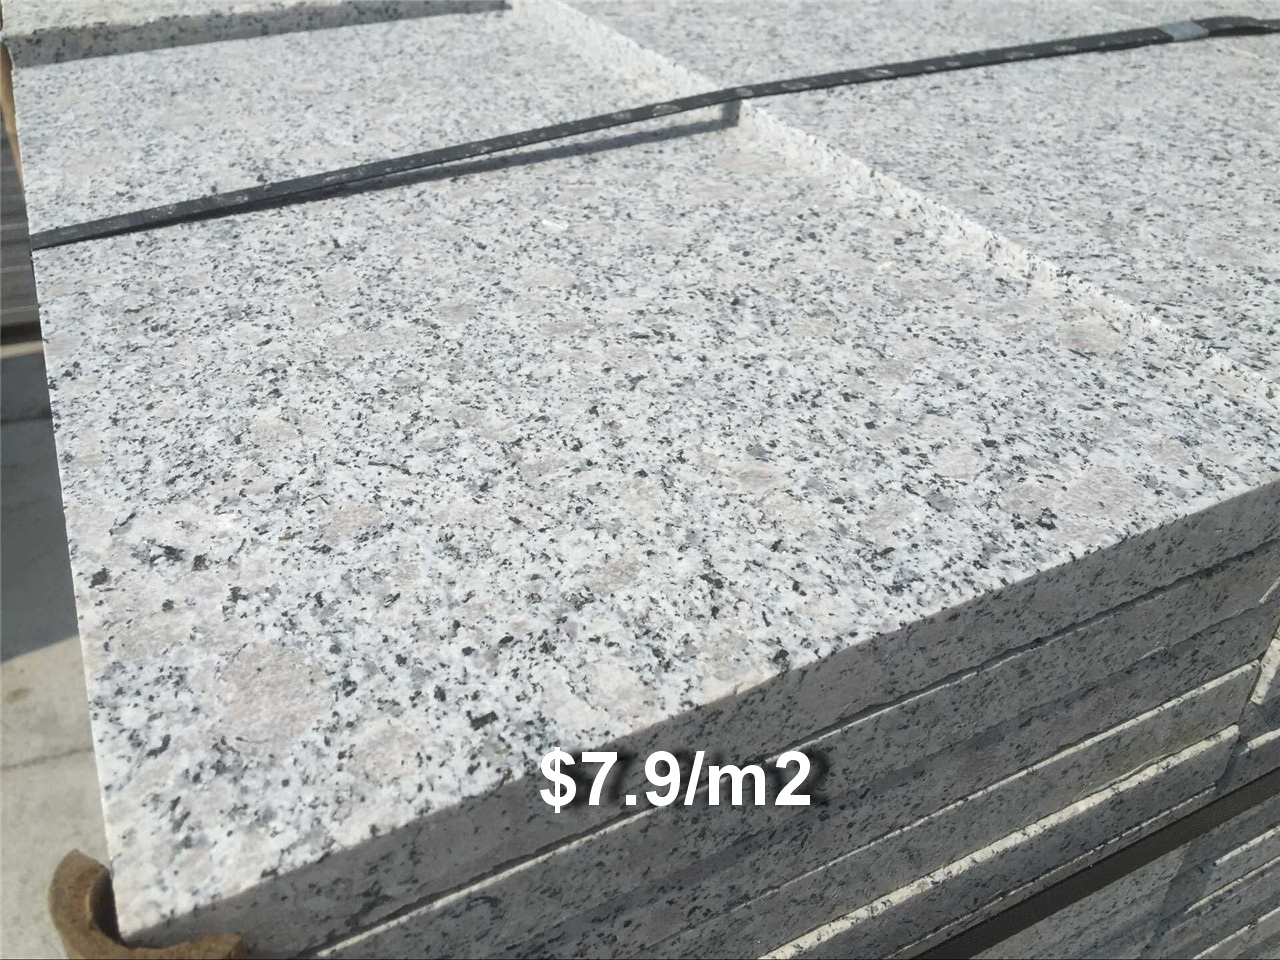 Bala white granite bushhammered 79m2 stonemarkt company limited bala white granite slabs tiles china cheapest granite slabs tiles dailygadgetfo Images